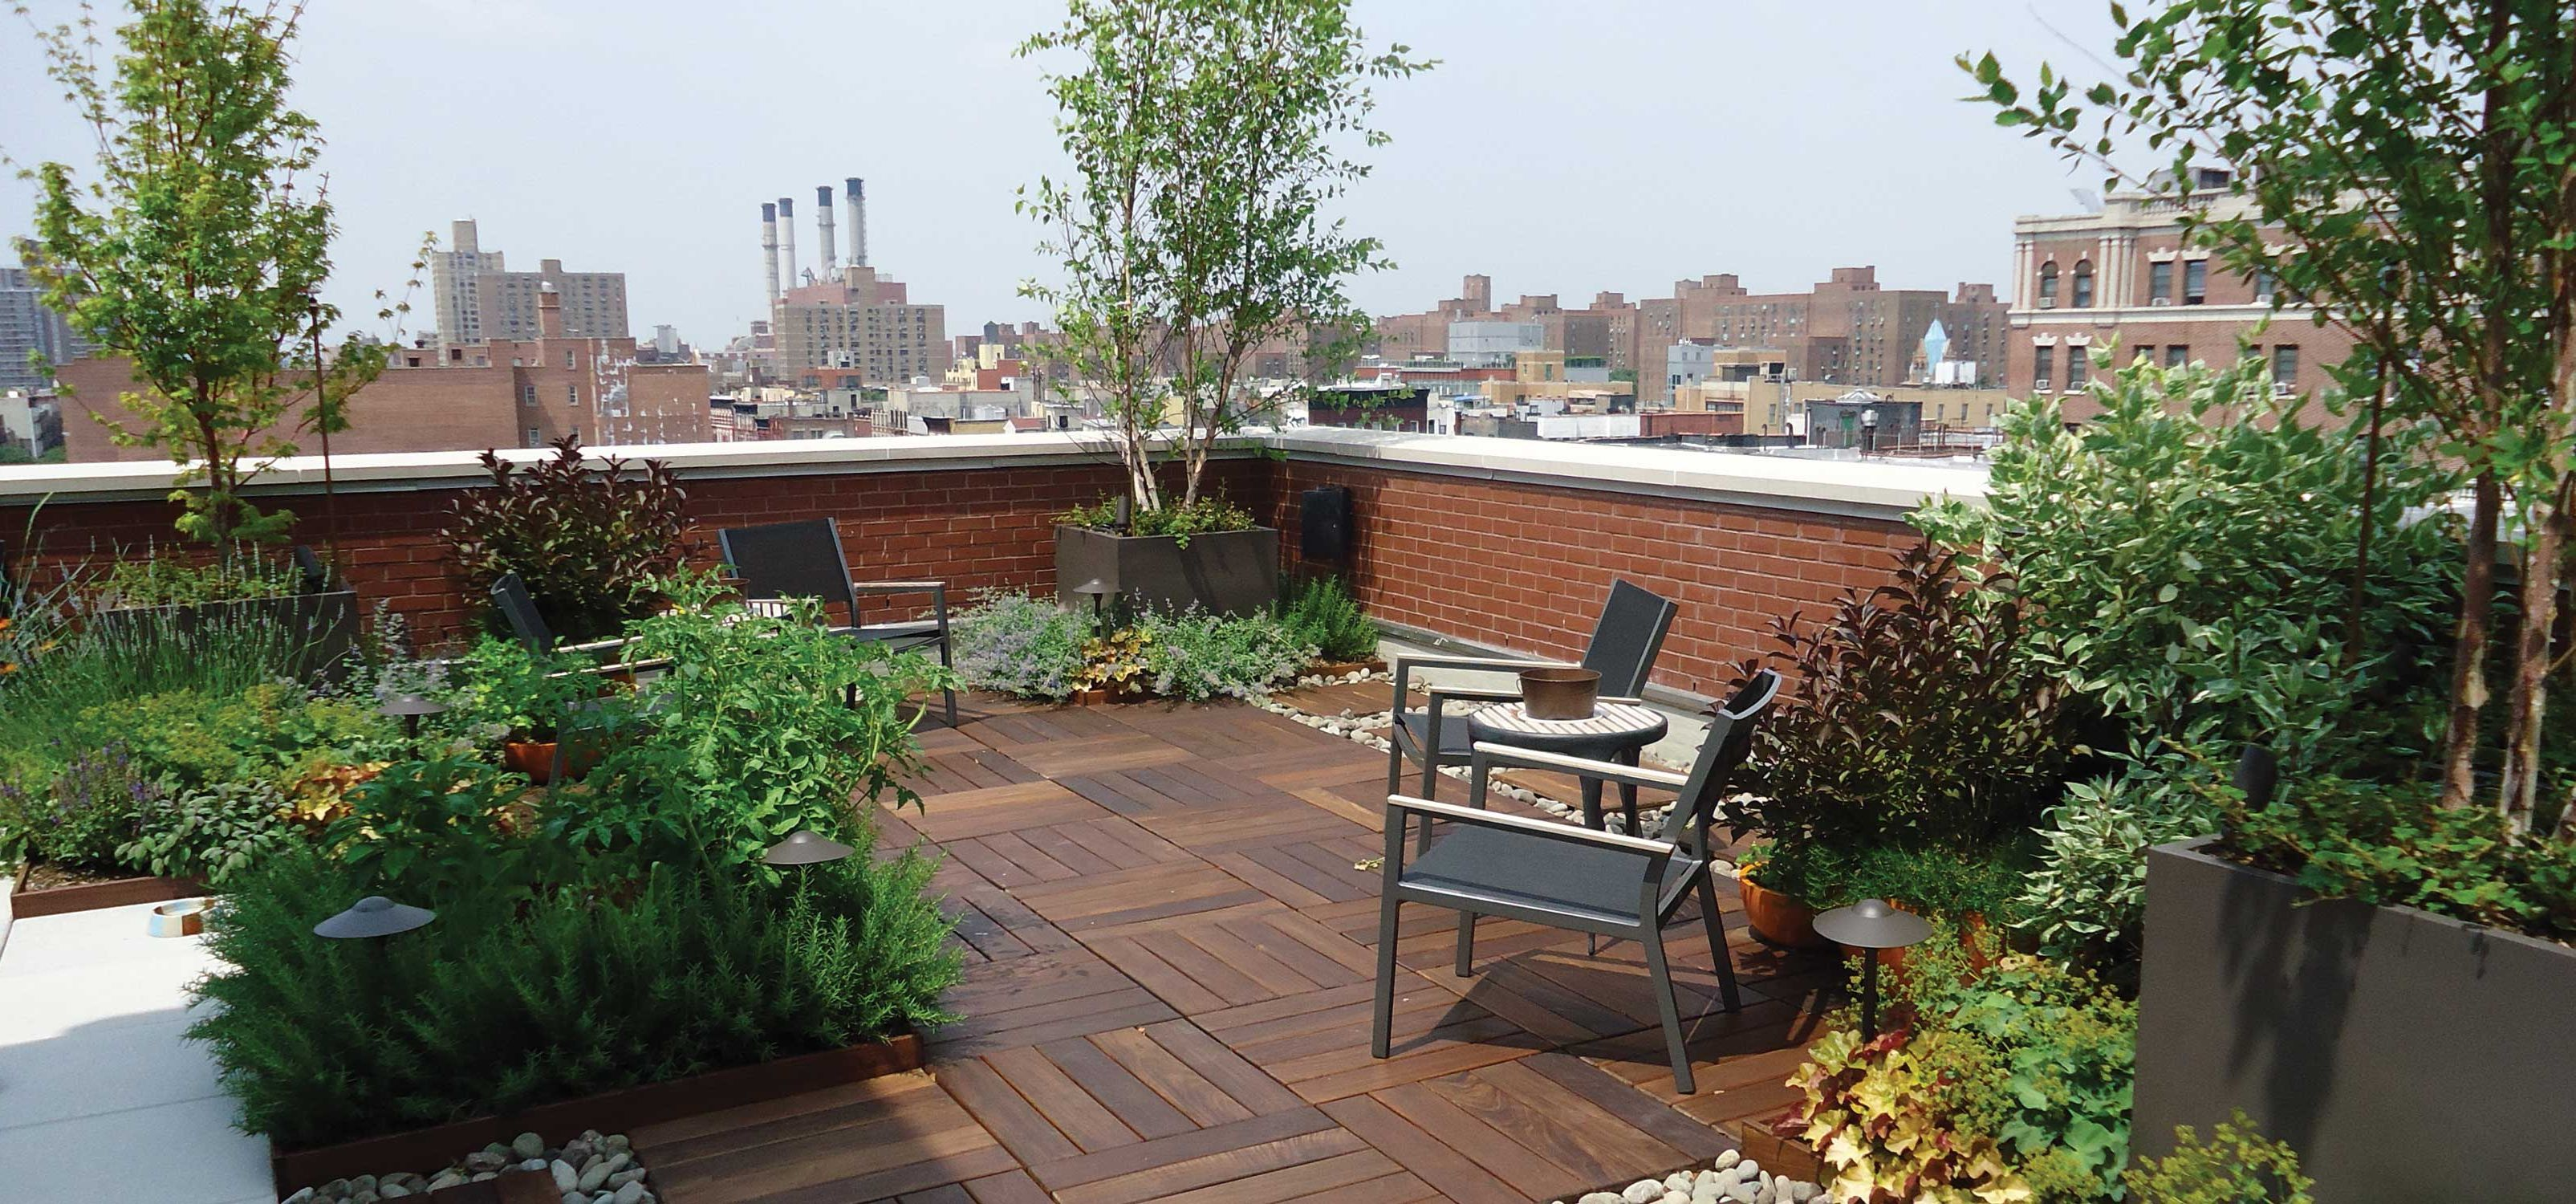 Beautiful small terrace gardens - Outdoor Beautiful Cozy Terrace Garden Picture Interesting Rooftop Terrace Garden Design Ideas